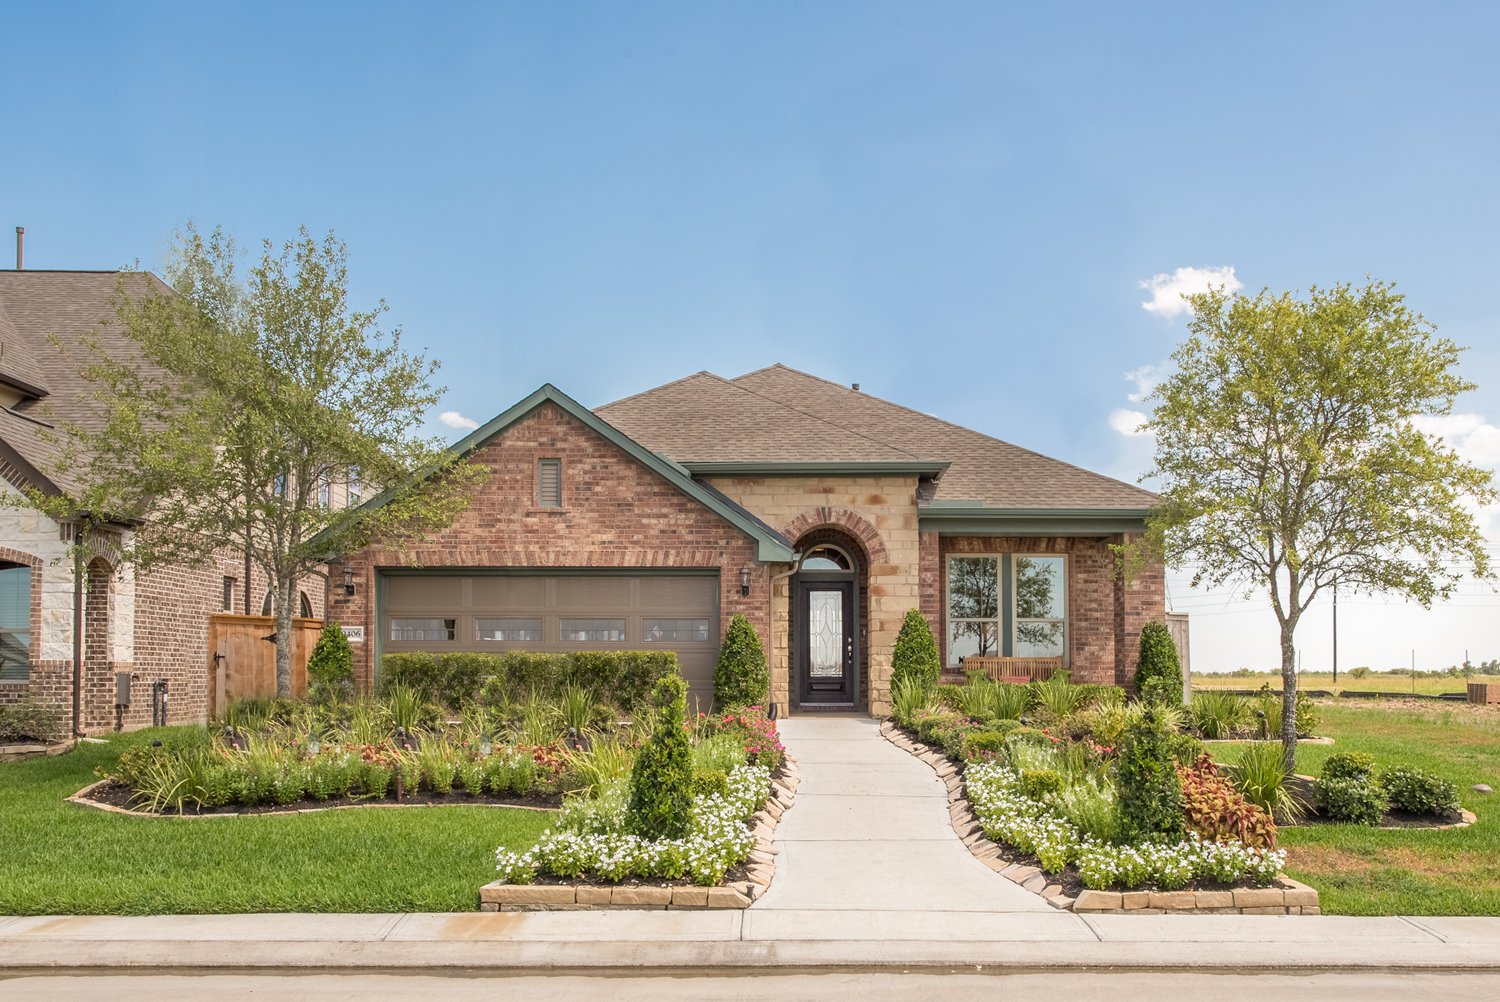 Build On Your Lot Classic Series Houston Tx Home Builder New Homes David Weekley Homes